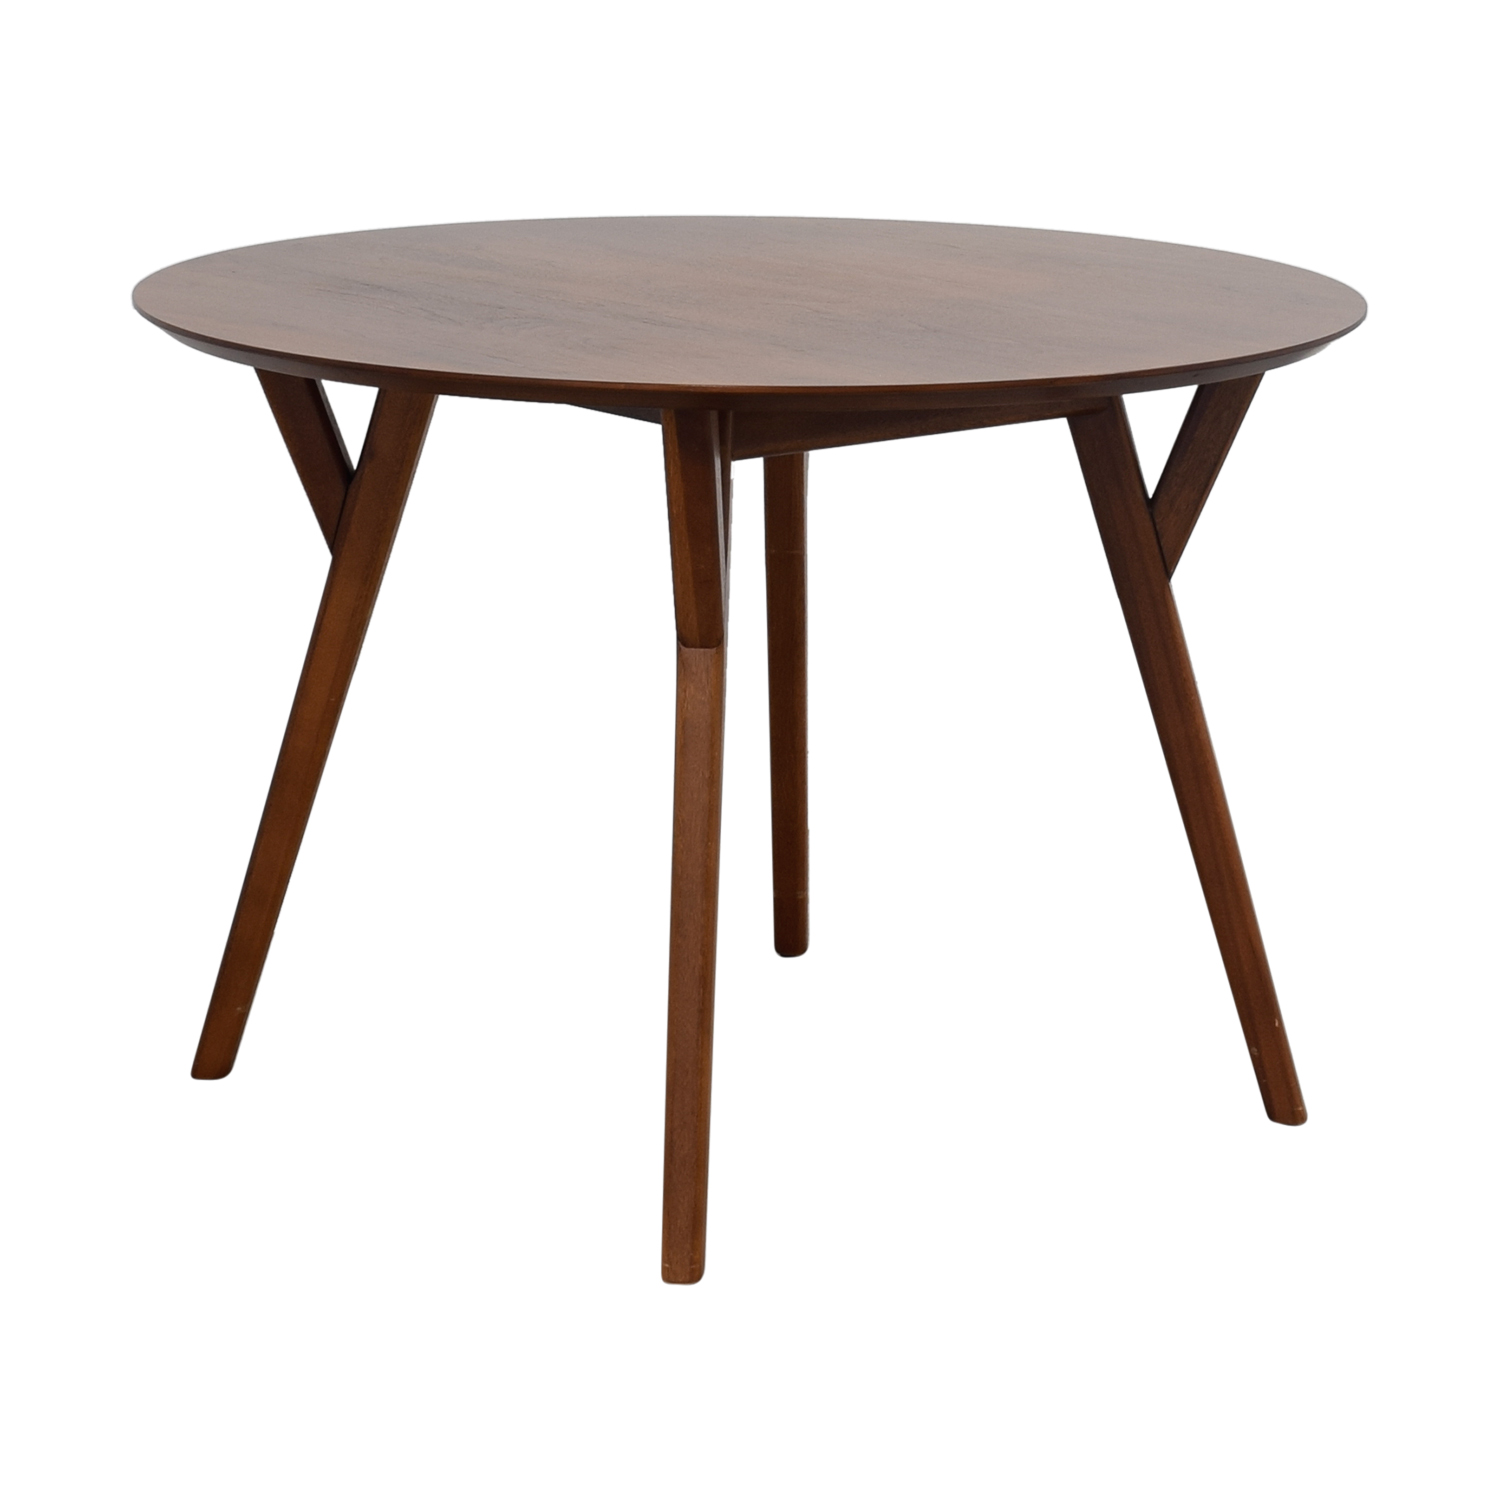 39 Off West Elm West Elm Mid Century Walnut Round Dining Table Tables